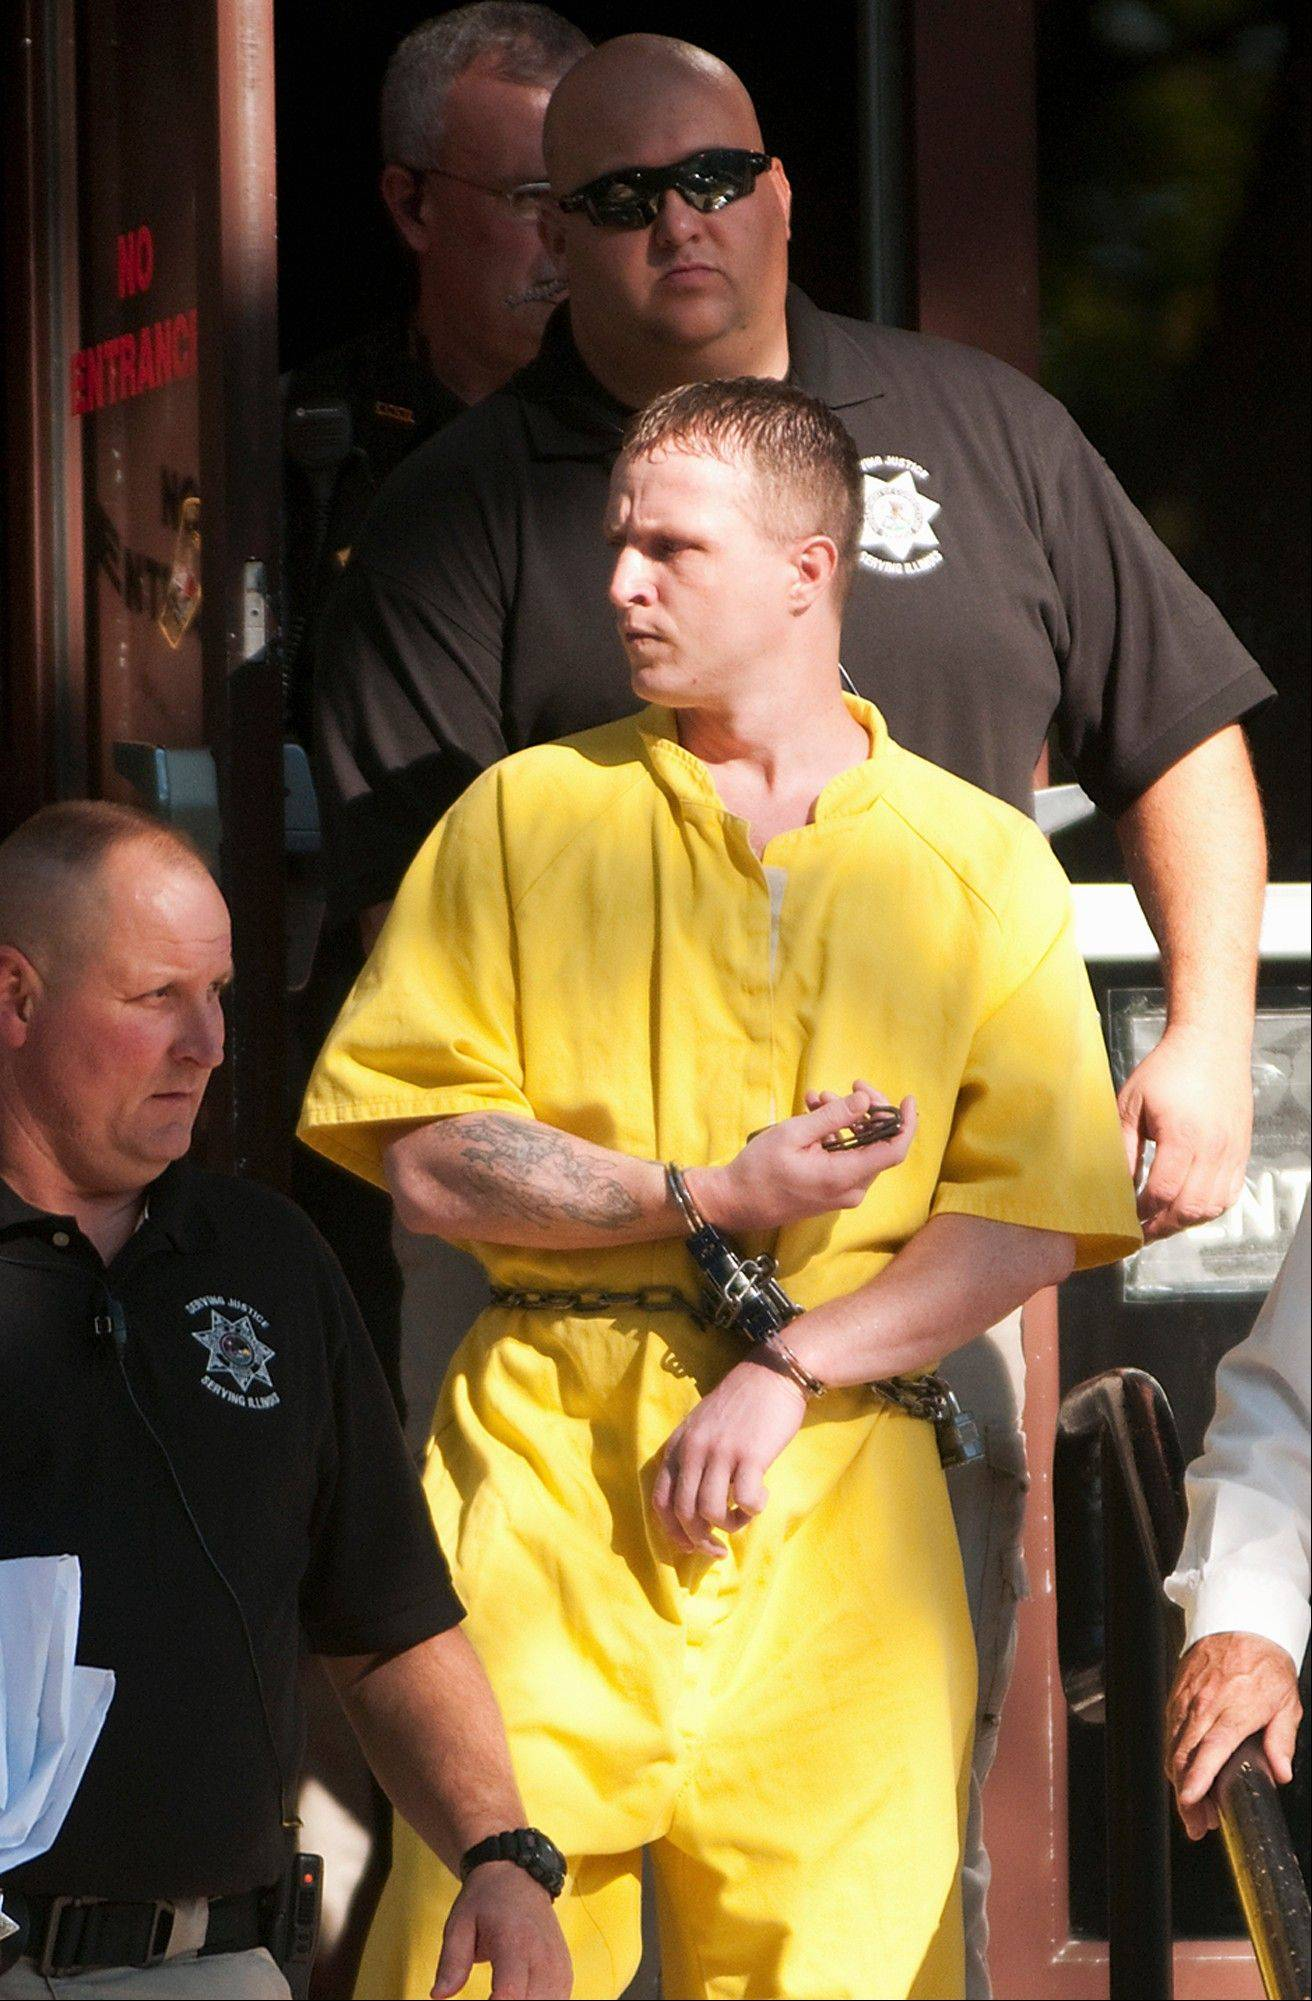 Nicholas Sheley is led out of the Knox County courthouse on Monday in Galesburg, Ill., after being found guilty of first-degree murder in the June 2008 death of 65-year-old Ronald Randall, the first of eight killings he�s accused of in Illinois and Missouri.